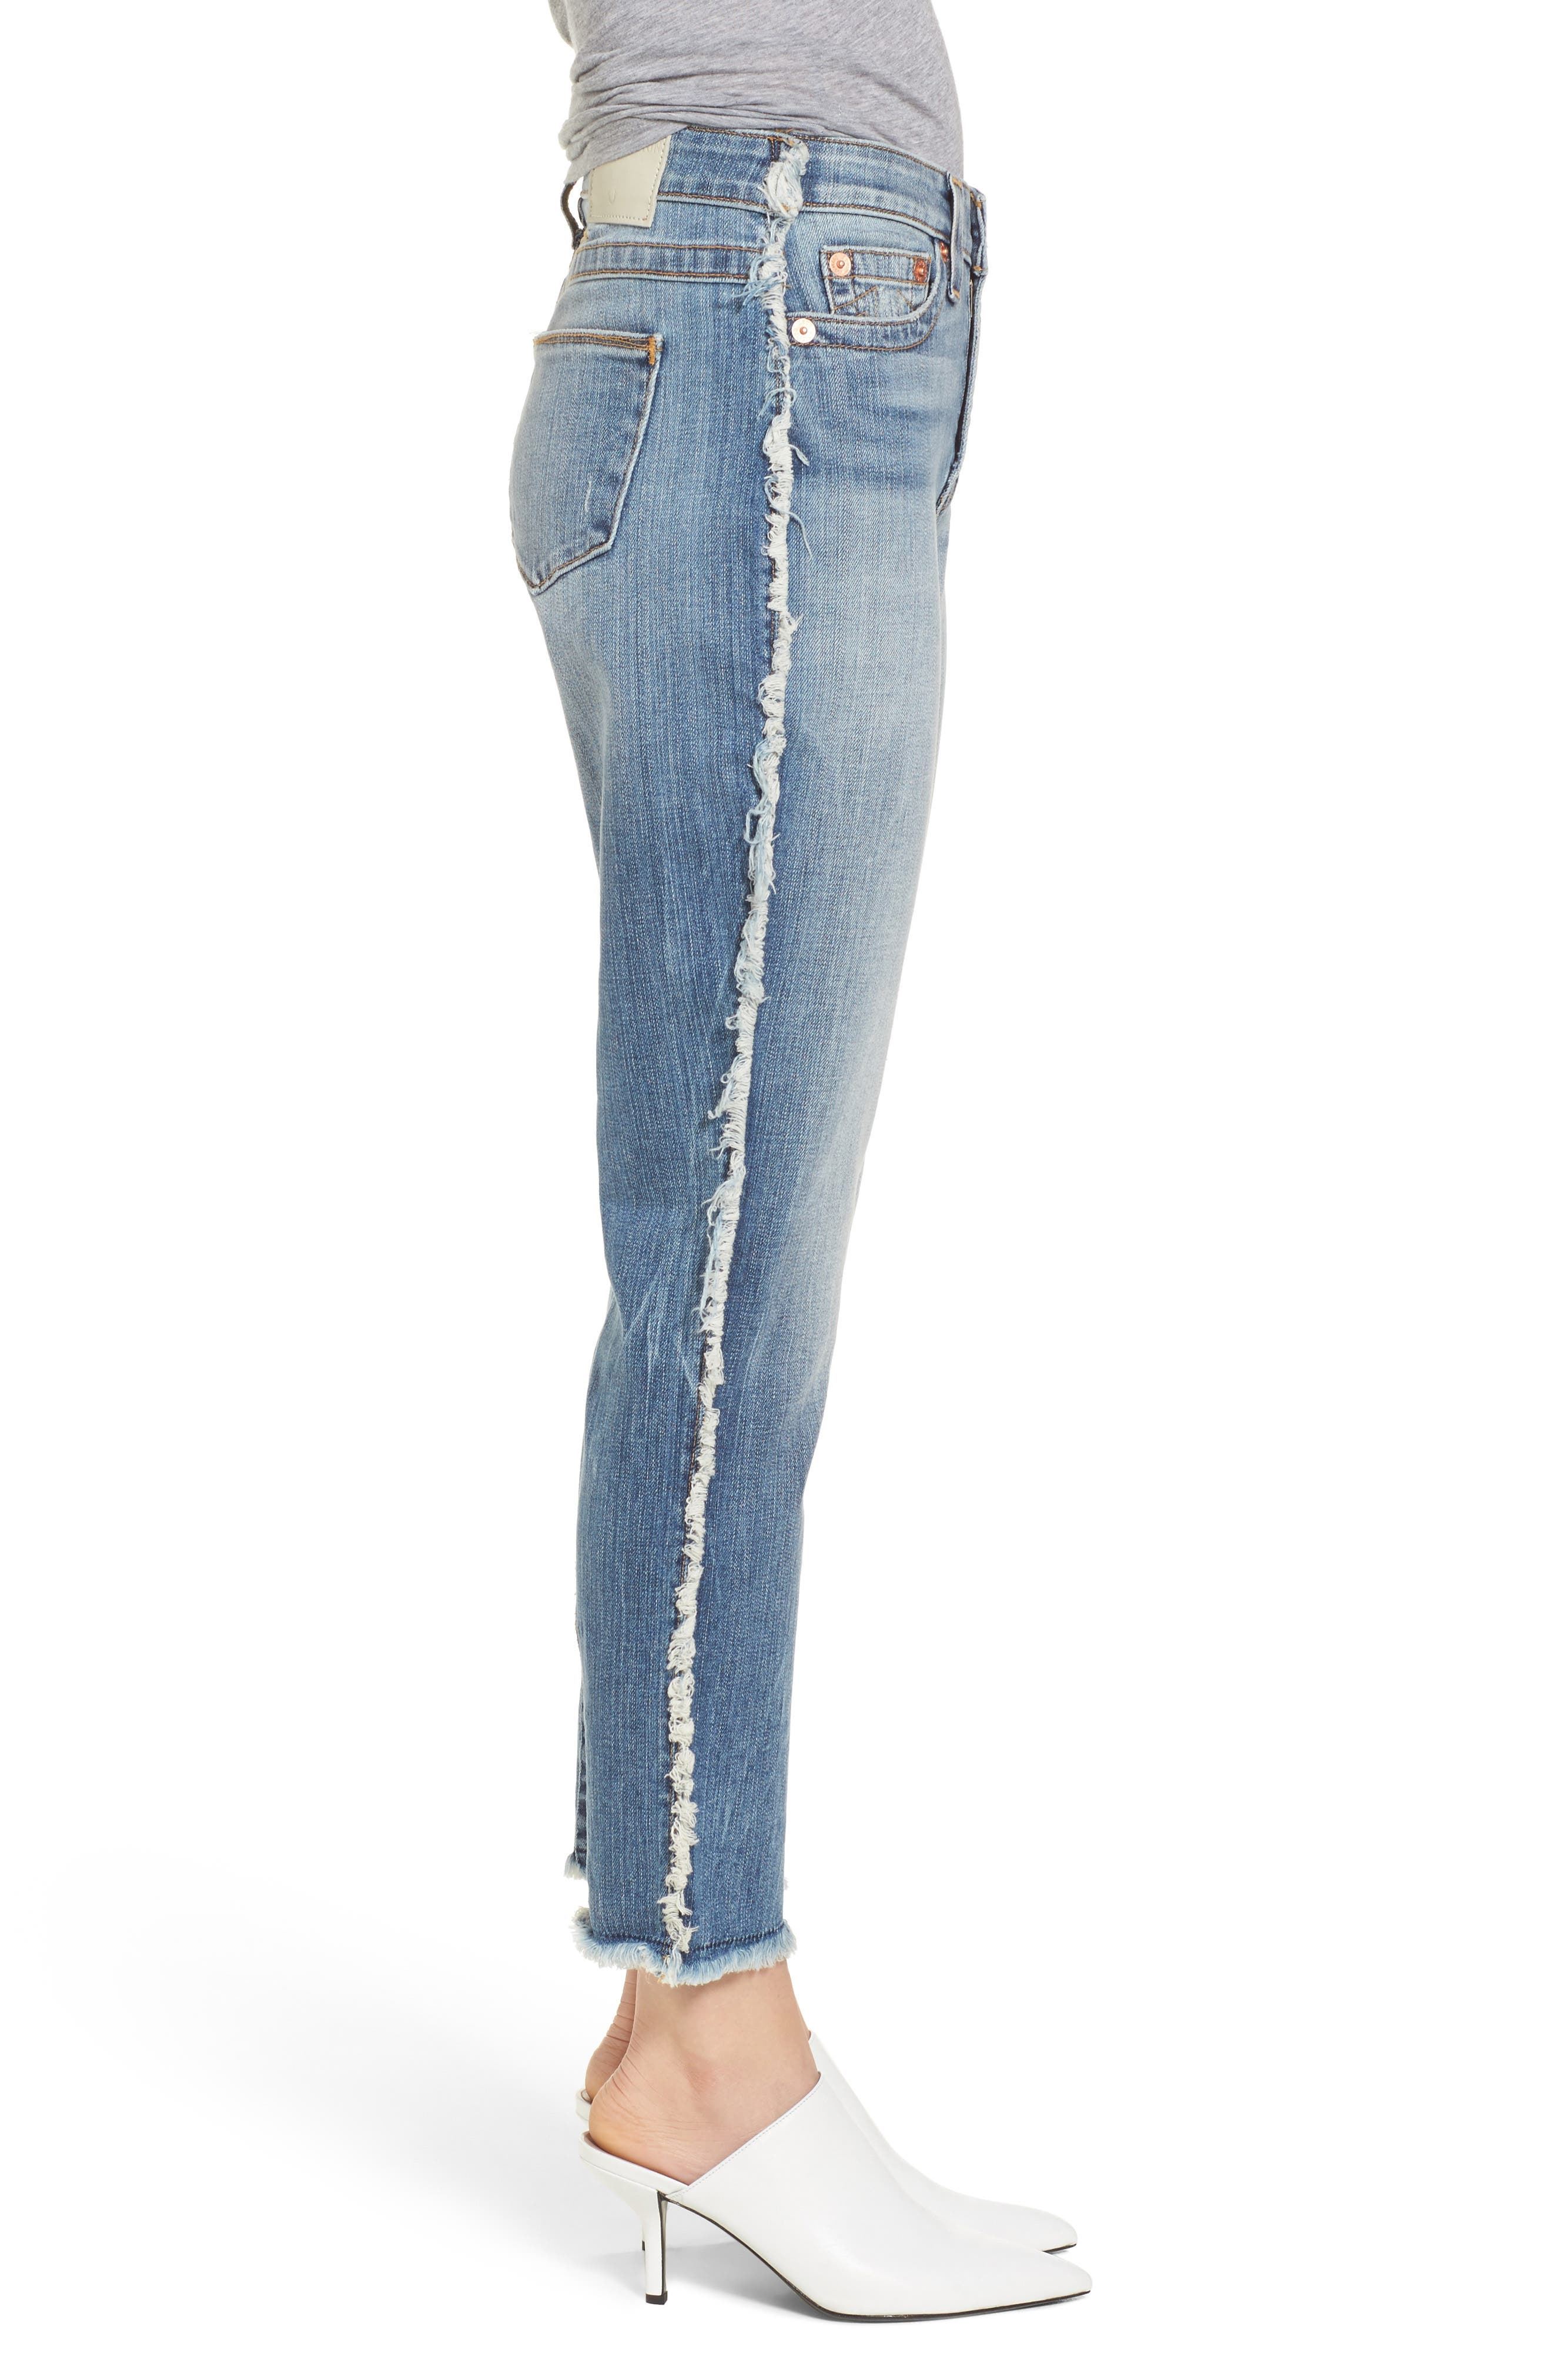 Colette High Waist Tapered Skinny Jeans,                             Alternate thumbnail 3, color,                             401